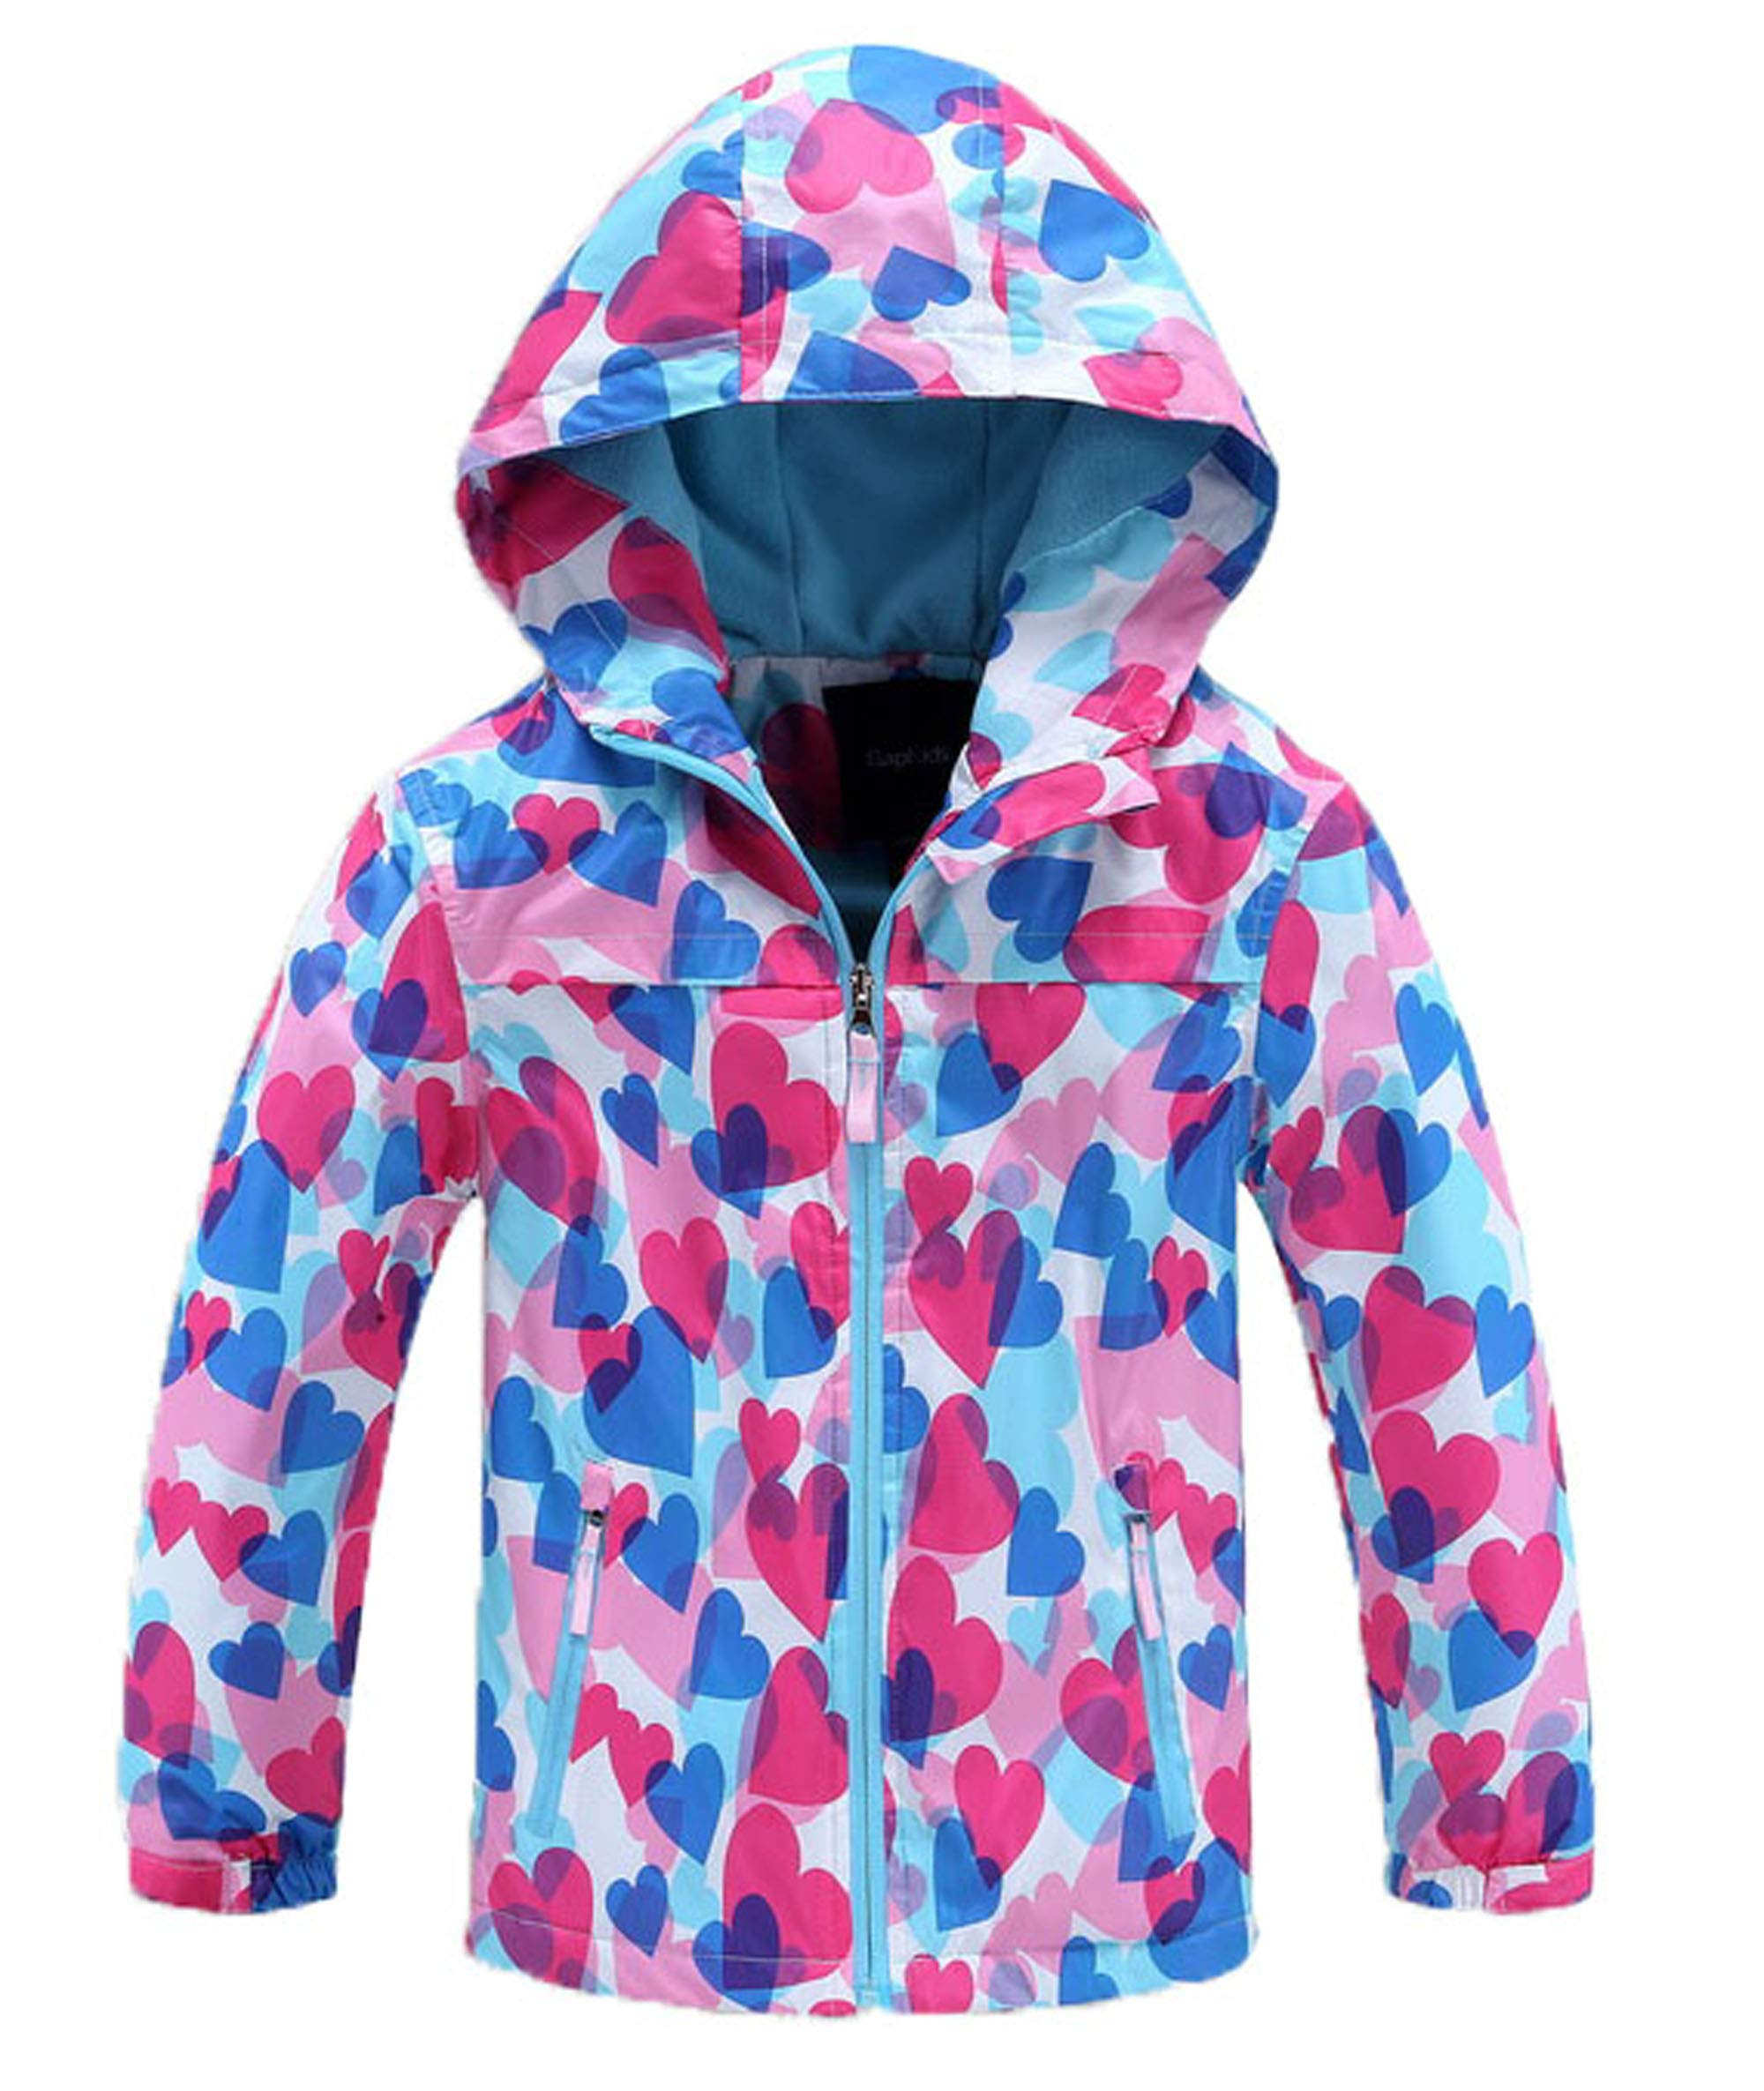 Seeduck Girls' Outdoor Floral Fleece Lined Windproof Jacket with Hood (5T=120CM=47.2 Inch, Light Blue) by Seeduck